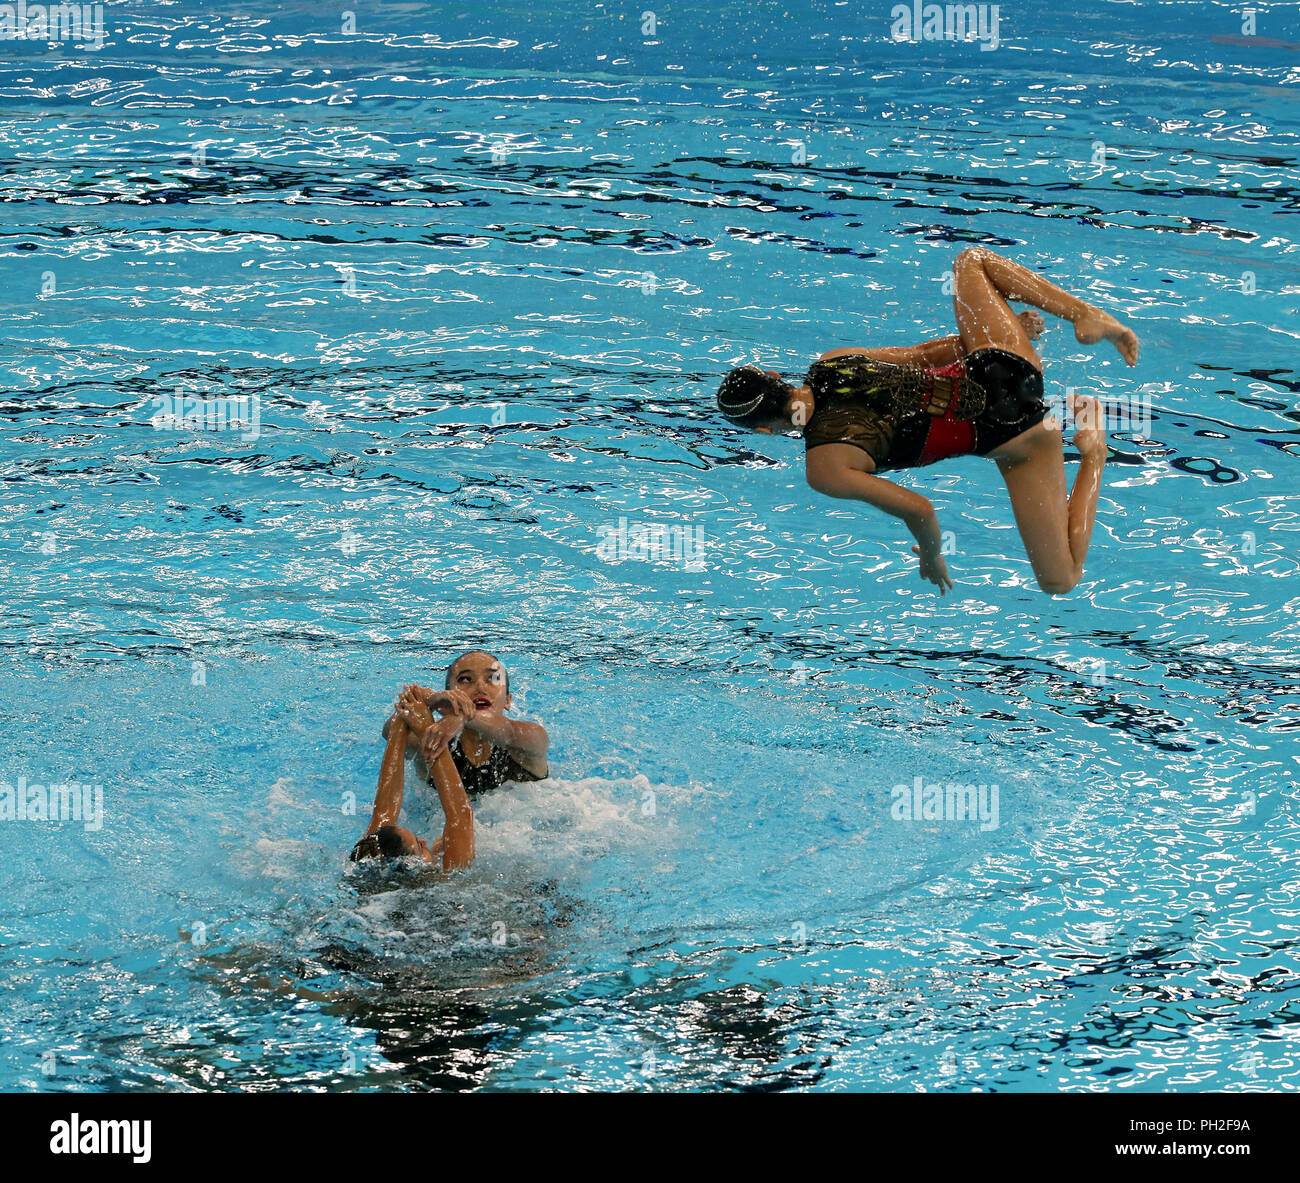 Indonesia, Jakarta, August, 29, 2018: Synchornised swimming Team Event: Team USBEKISTAN in performance during free routine. Credit: Seshadri SUKUMAR/Alamy Live News - Stock Image